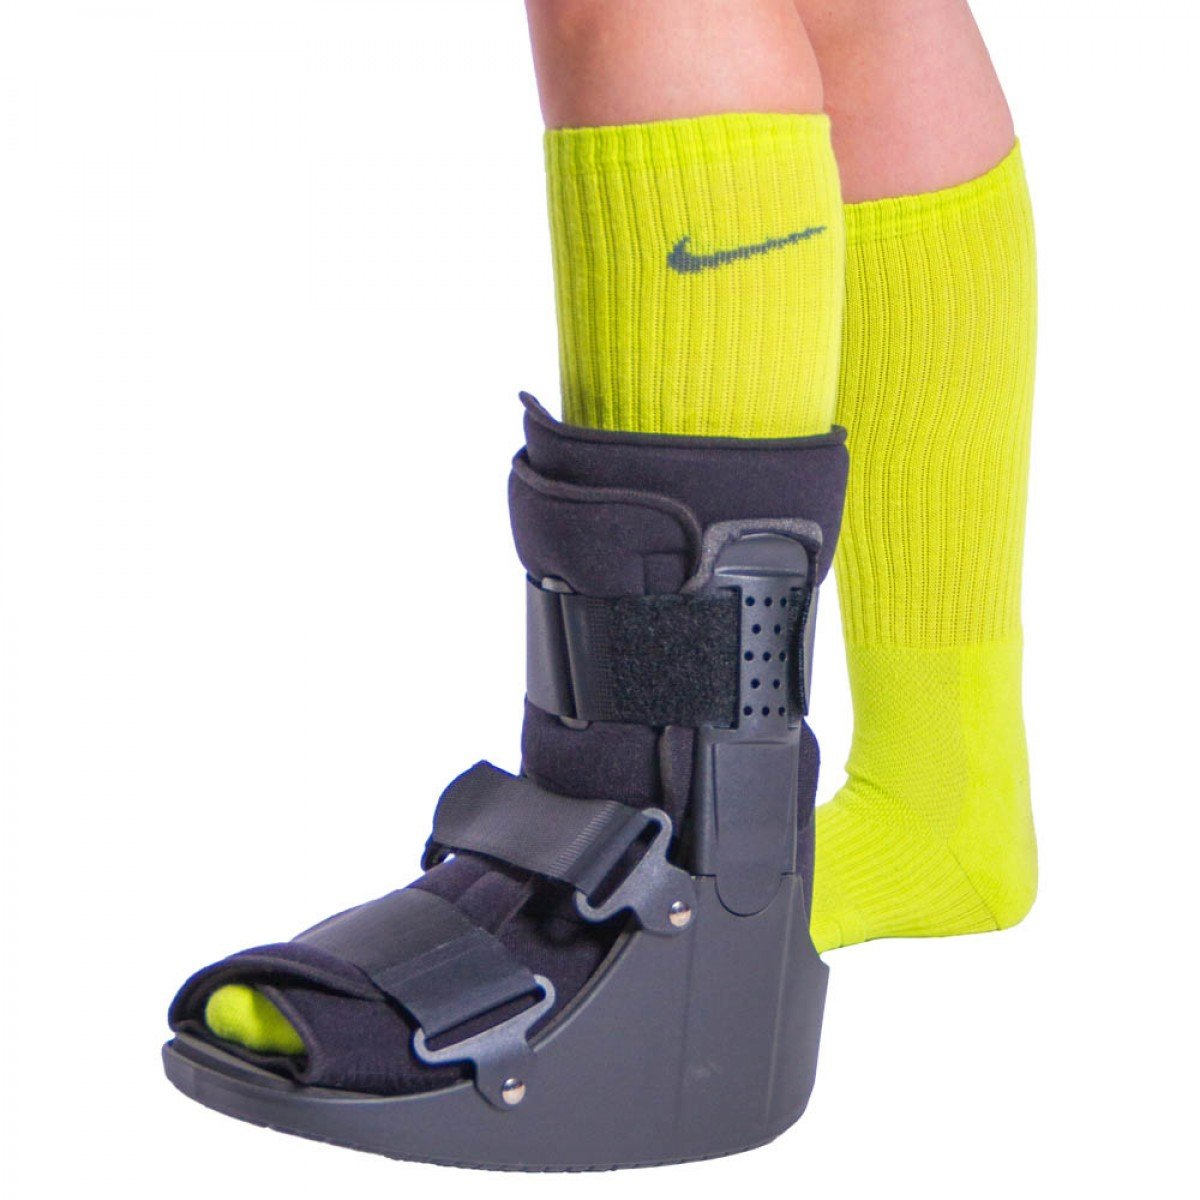 BraceAbility Short Broken Toe Boot | Walker for Fracture Recovery, Protection and Healing After Foot or Ankle Injuries (Medium) by BraceAbility